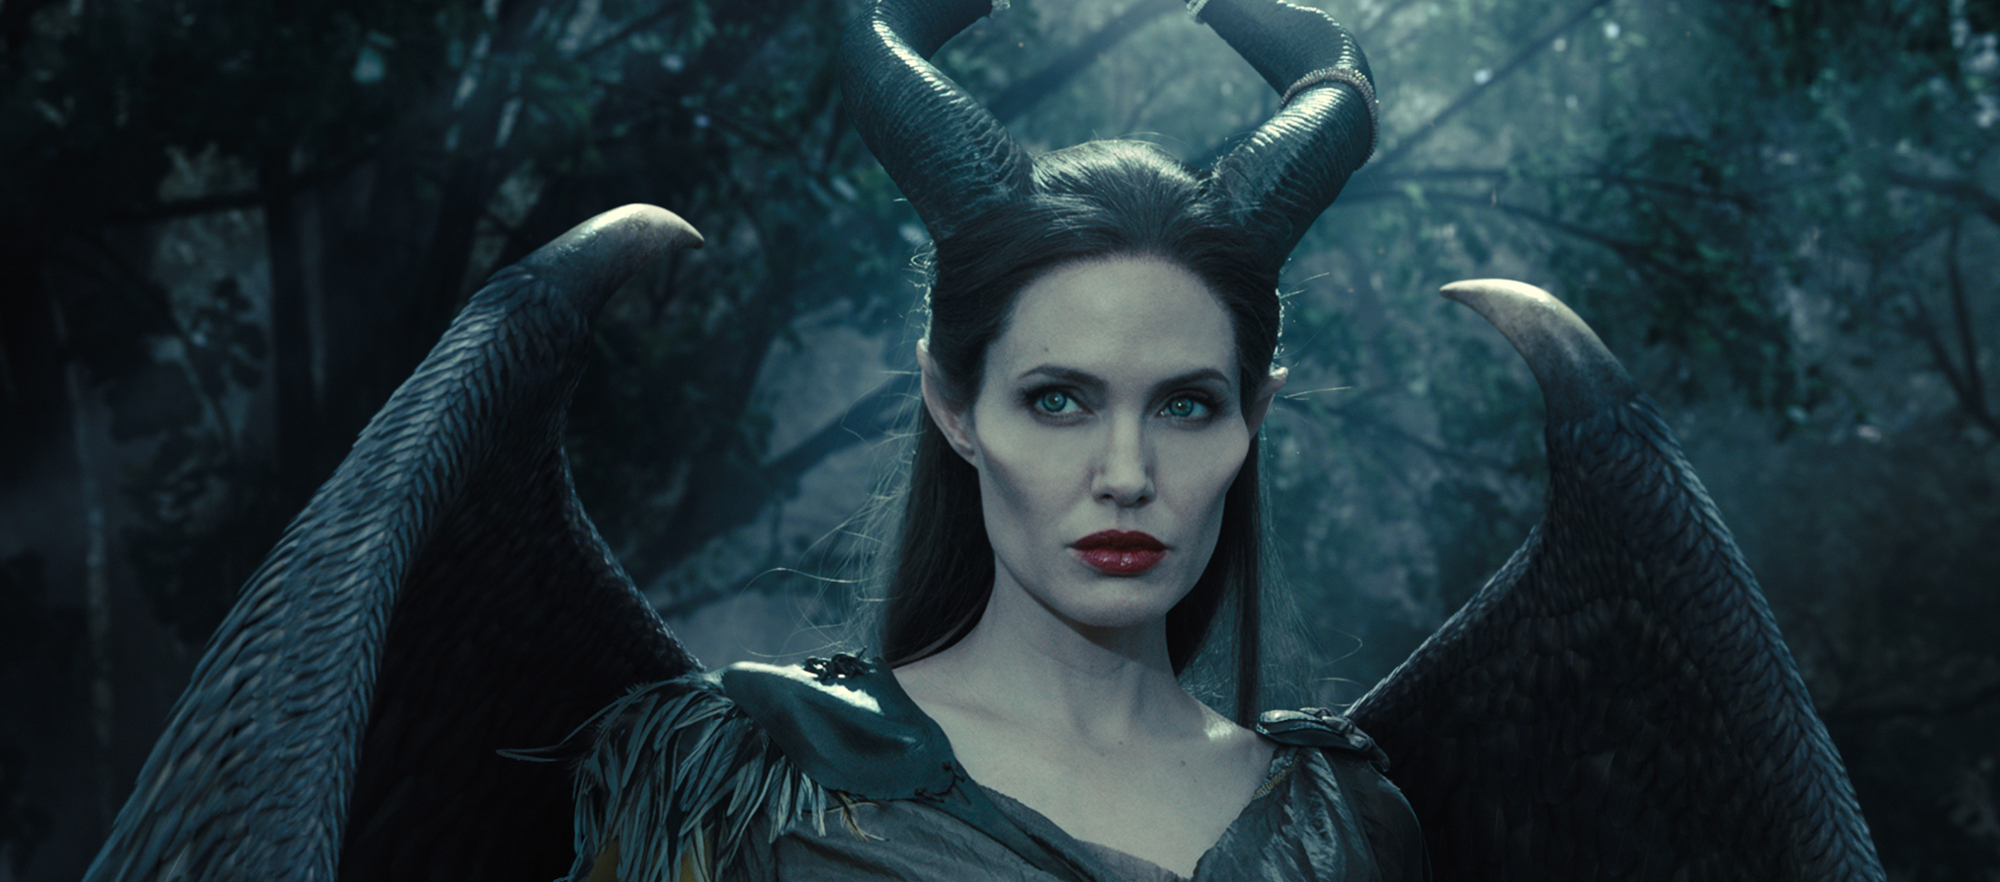 Good Maleficent